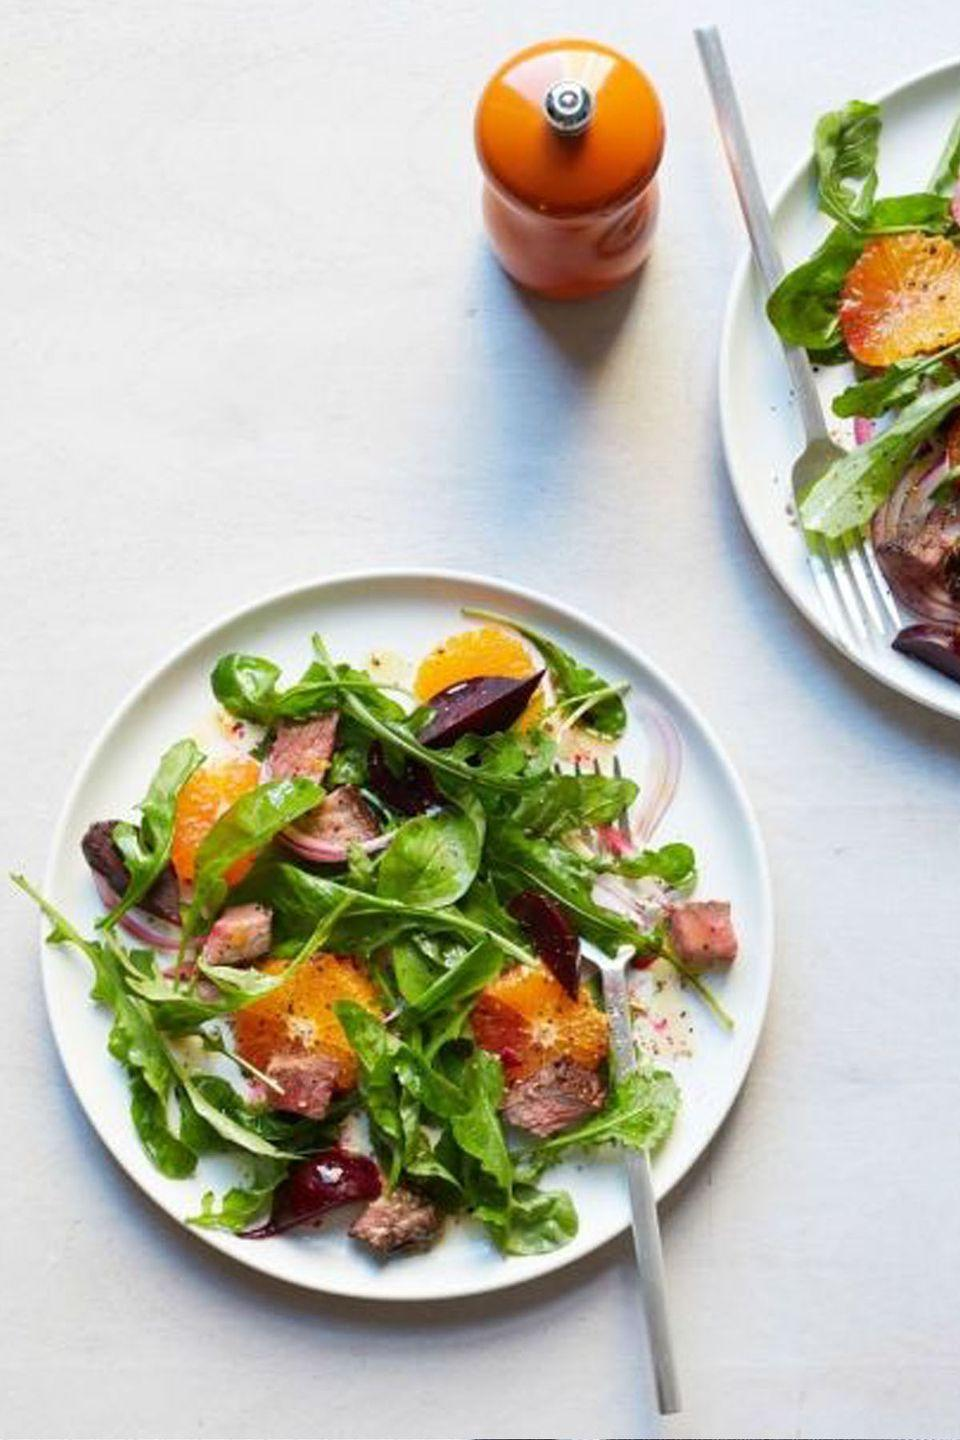 "<p>You don't have to cut red meat from your diet: Portions and leaner cuts are key. Pairing steak with oranges and beets helps keep this salad light and refreshing, yet totally satisfying.</p><p><a href=""https://www.womansday.com/food-recipes/food-drinks/recipes/a53273/beet-tangerine-and-steak-salad/"" rel=""nofollow noopener"" target=""_blank"" data-ylk=""slk:Get the recipe for Beet, Tangerine and Steak Salad."" class=""link rapid-noclick-resp""><em>Get the recipe for Beet, Tangerine and Steak Salad.</em></a><br></p>"